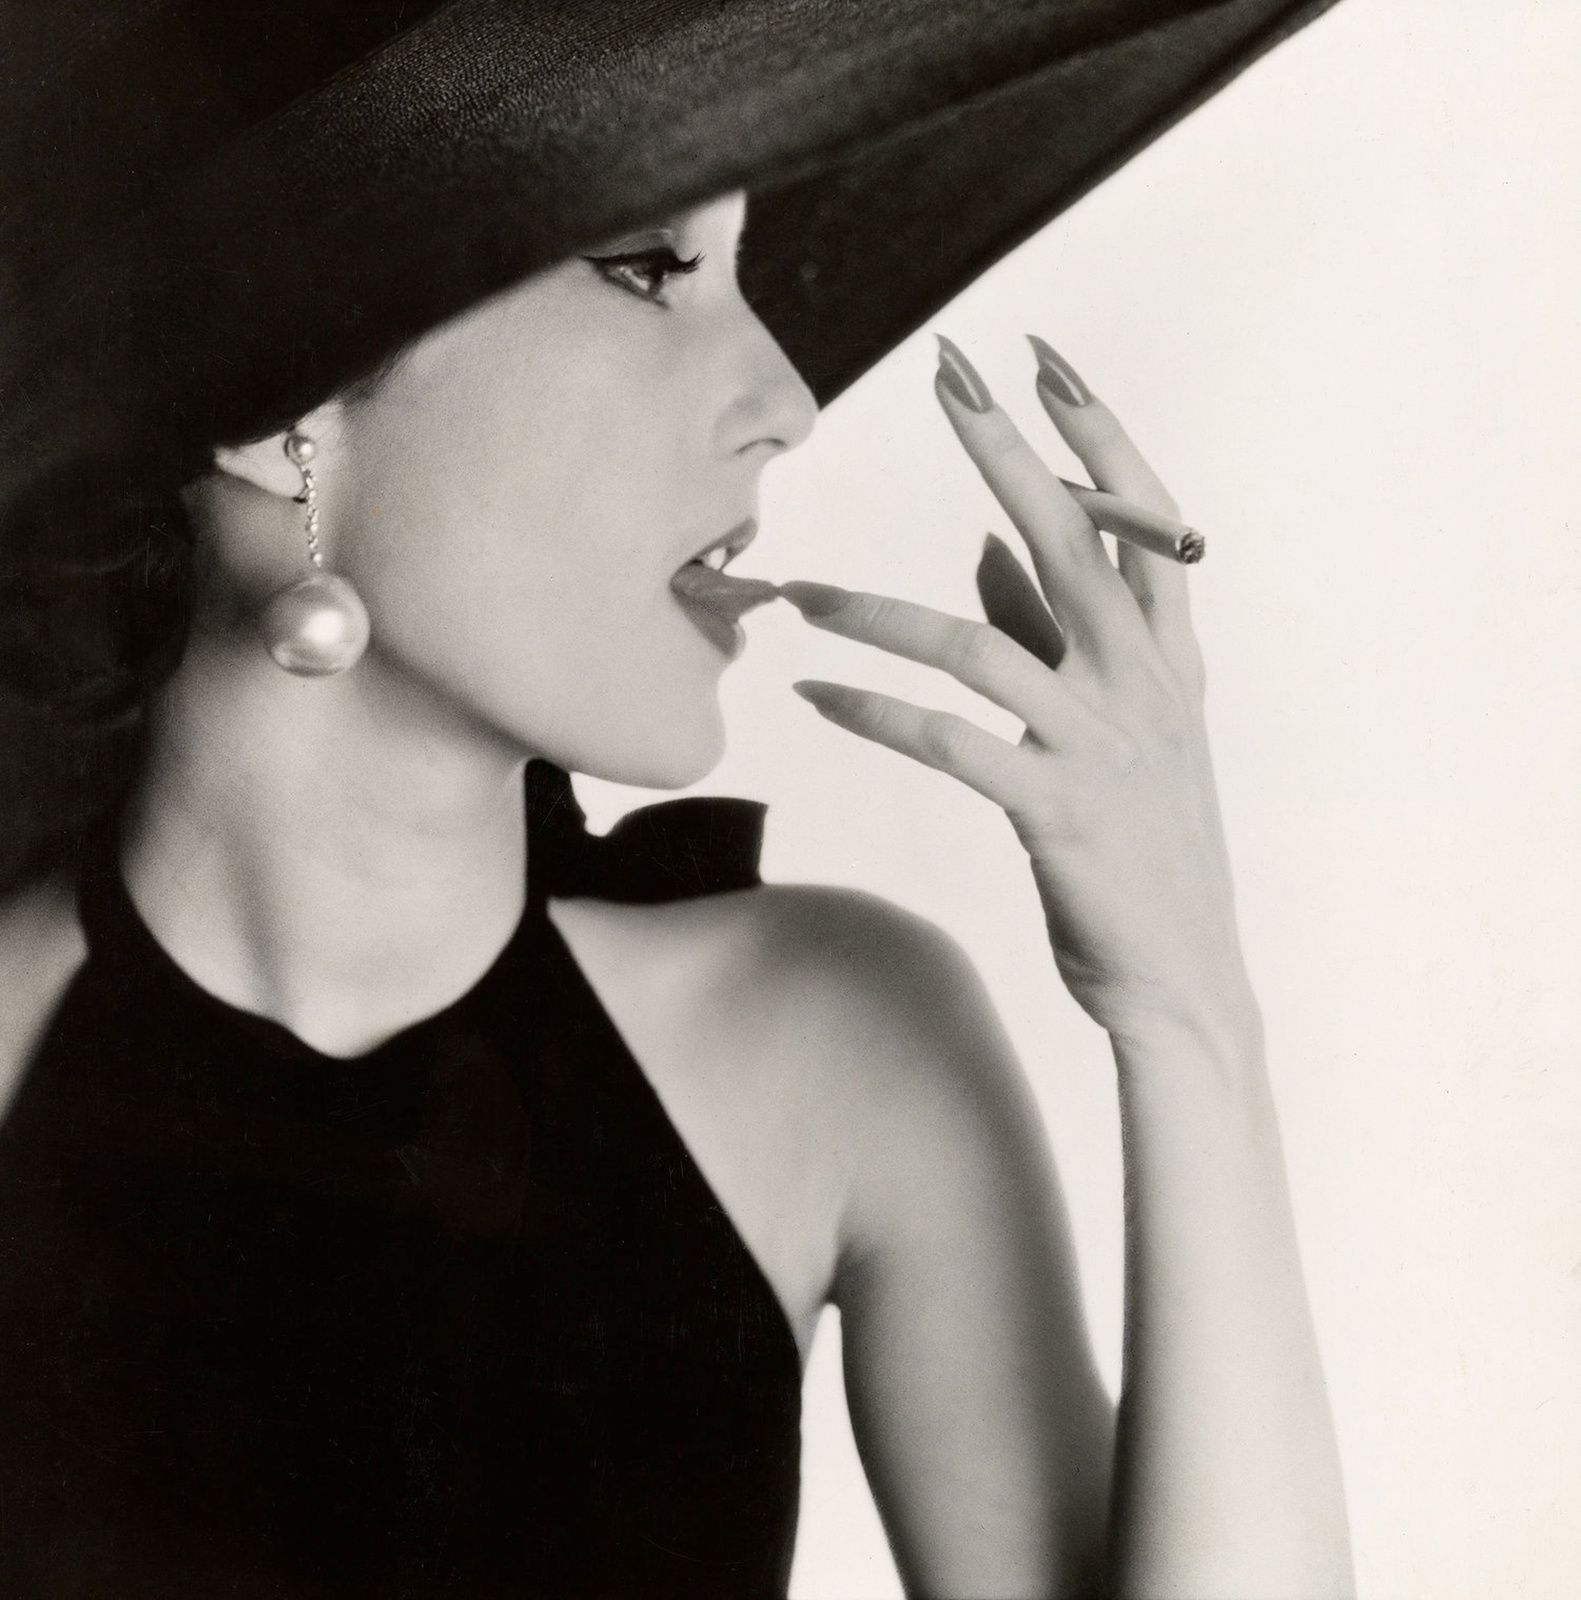 """Girl with Tabacco on Tongue, New York"", 1951 d'Irving PENN - Courtesy The Metropolitan Museum of Art"